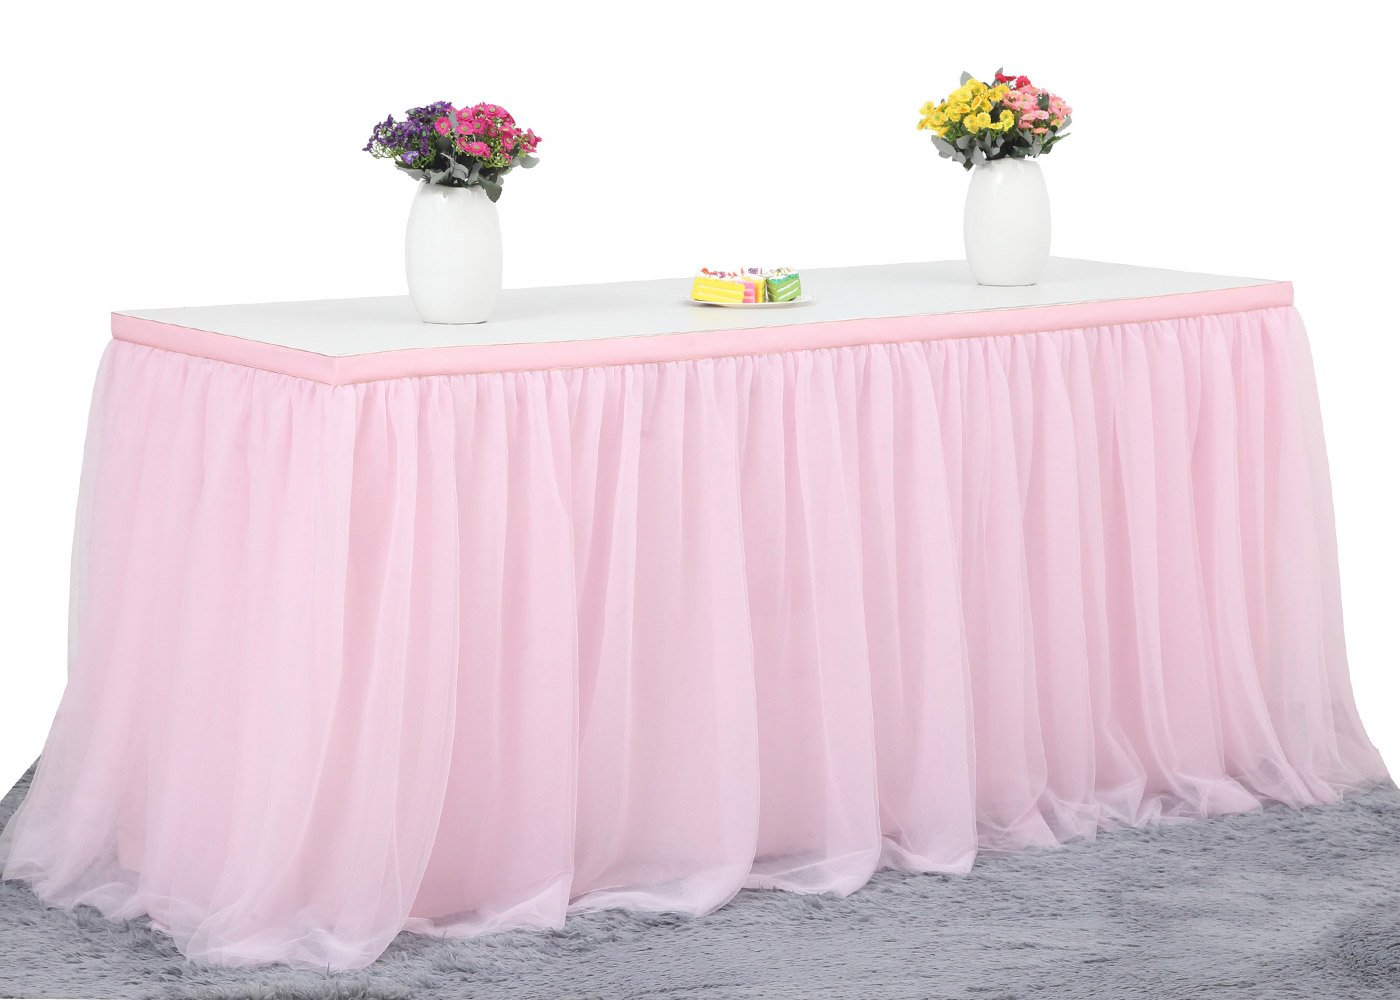 9FT Pink Tulle Table Skirt High-end Gold Brim 3 Layer Round or Rectangle Tables Mesh Tutu Table Skirting Fluffy and Elegant for Baby Show,Birthday Party,Wedding Decoration.(L108inH30in)